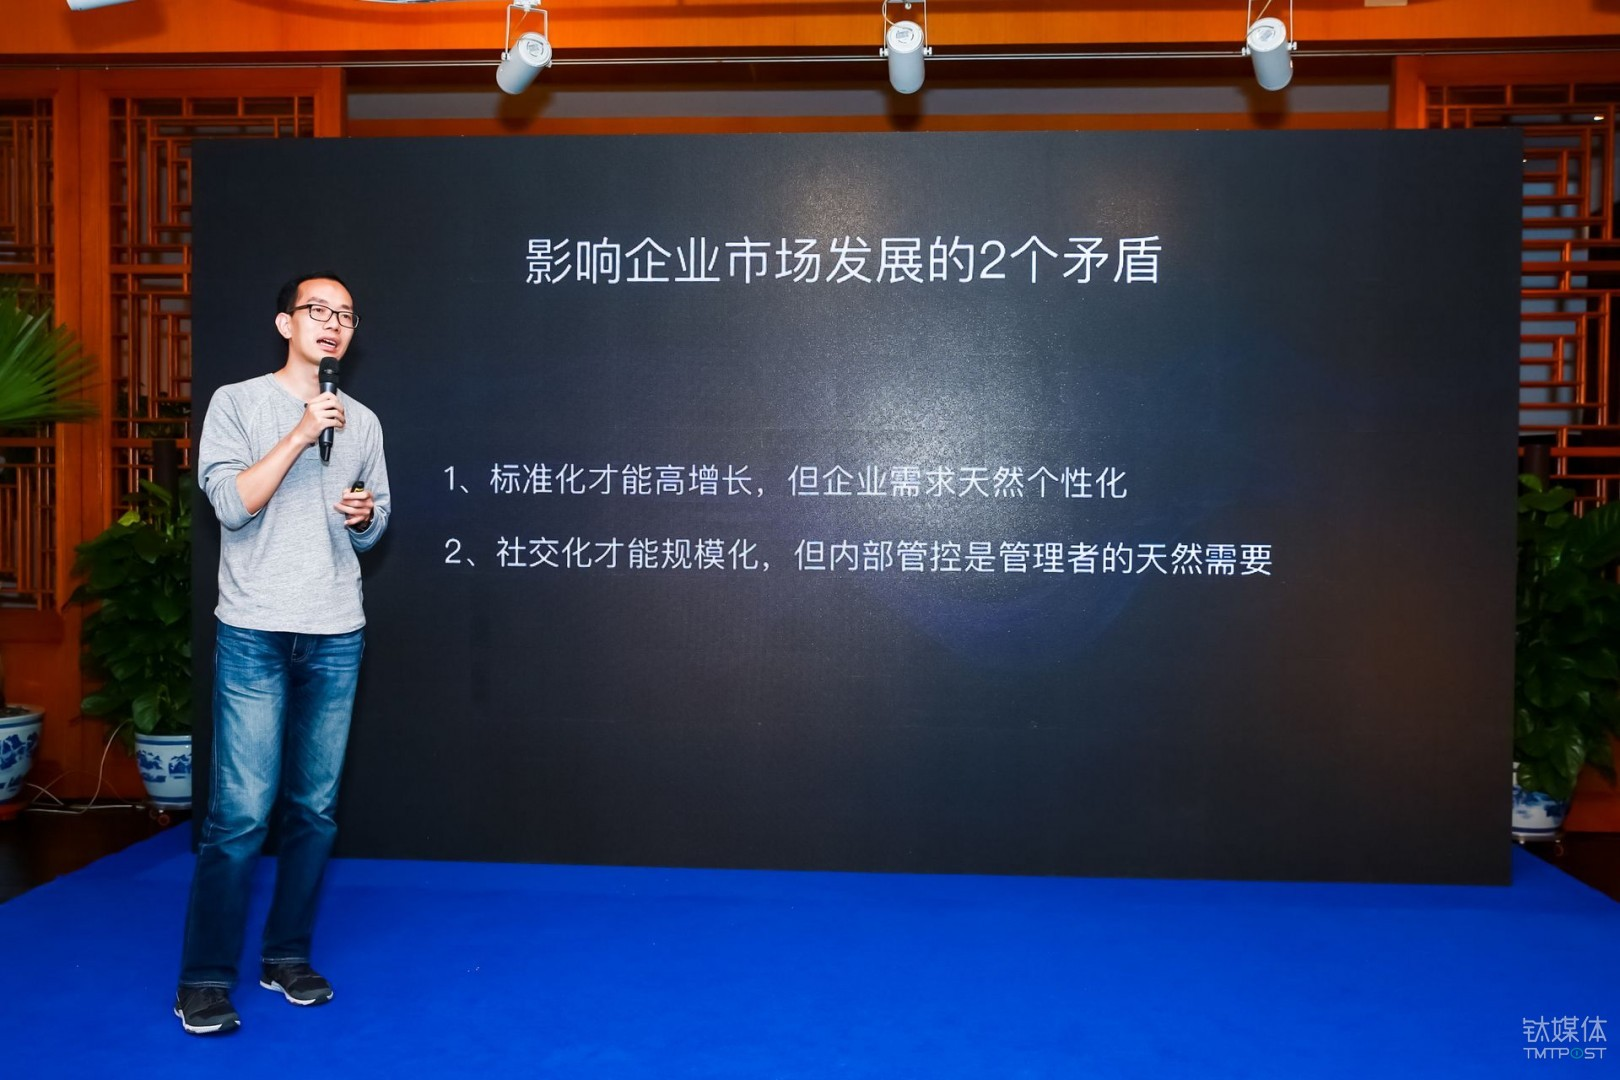 Tencent Instant Message's product director Yan Xianqing believed that the conflict between standardization and personalization constitutes a natural paradox in the enterprise service market.